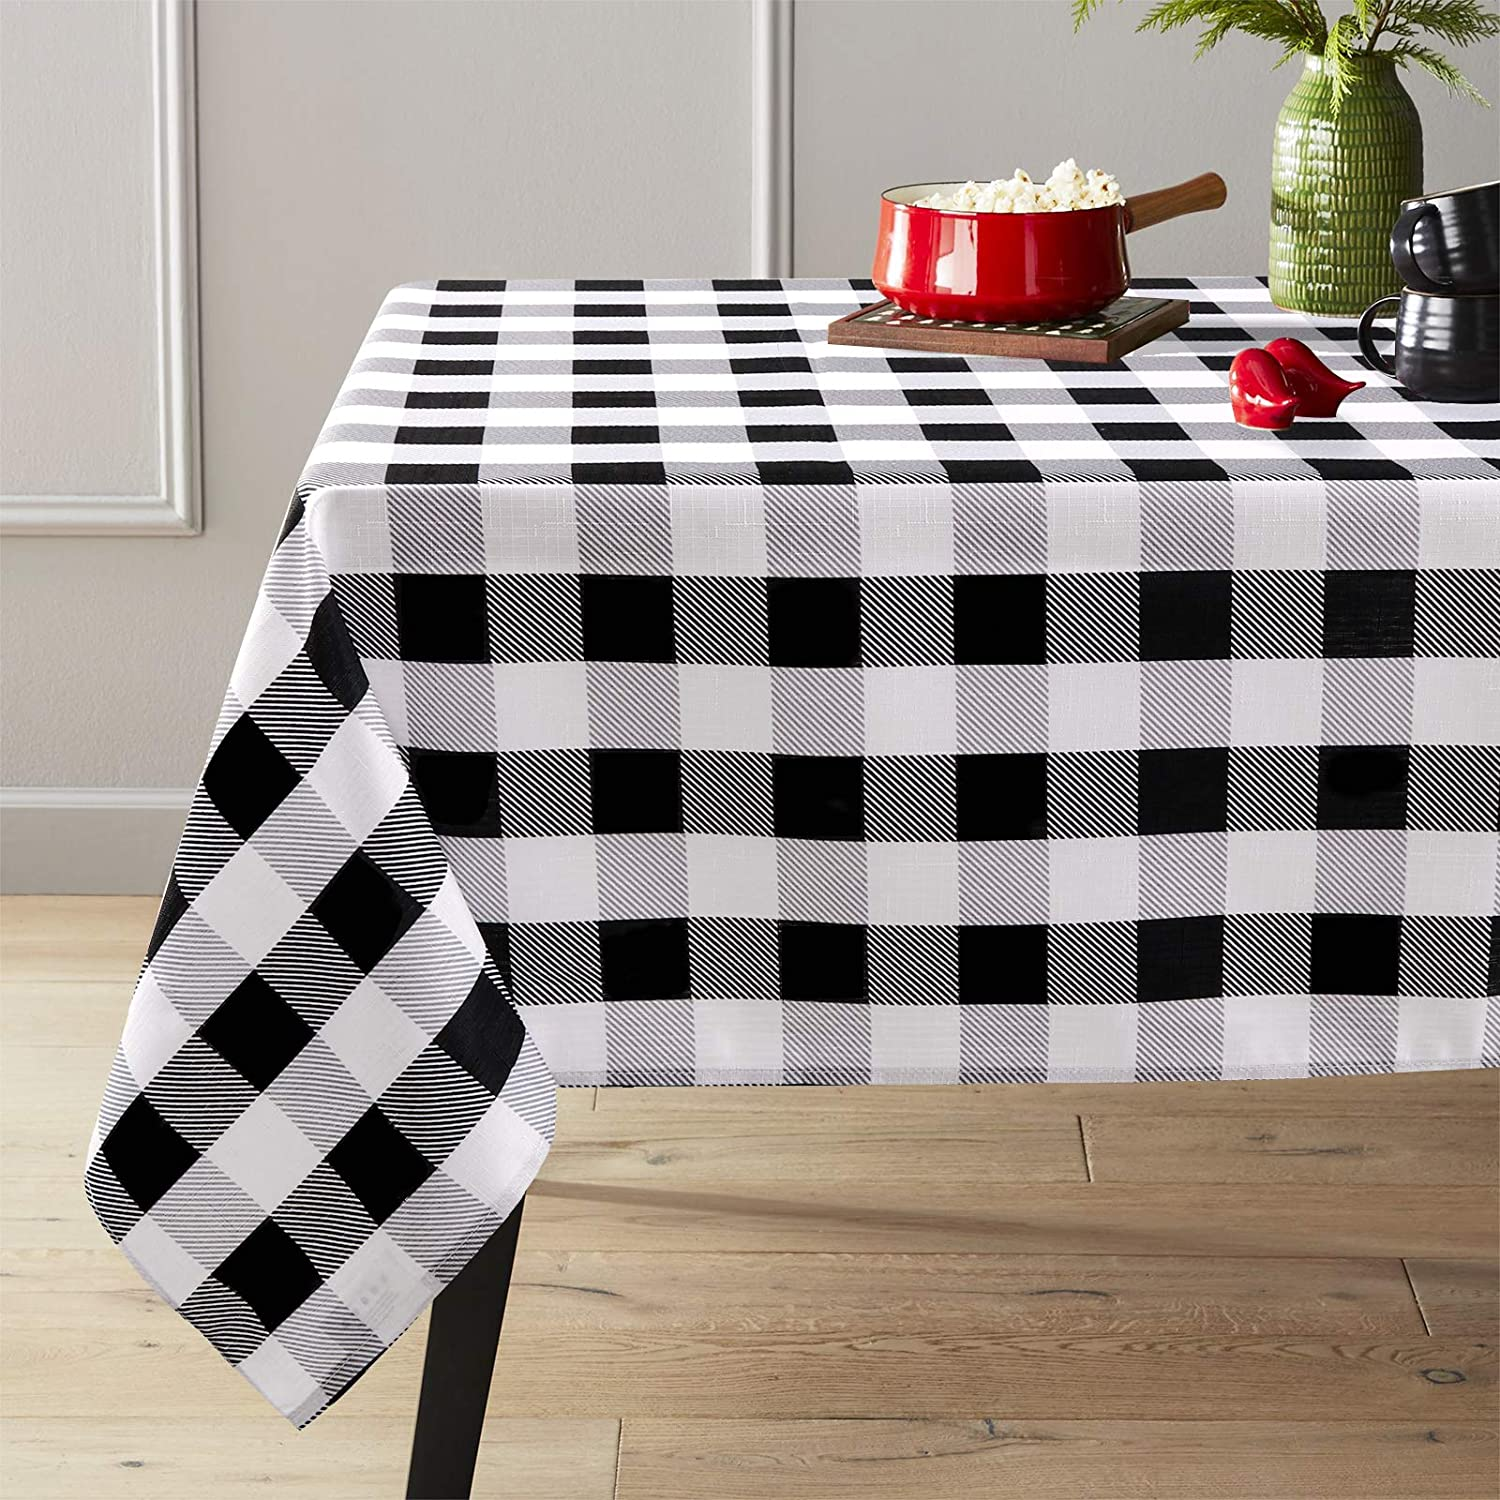 ColorBird Buffalo Check Tablecloth Farmhouse Style Water Resistant Spillproof Polyester Fabric Table Cover for Home Kitchen Thanksgiving Christmas (Rectangle/Oblong, 60 x 84 Inch, Black and White)